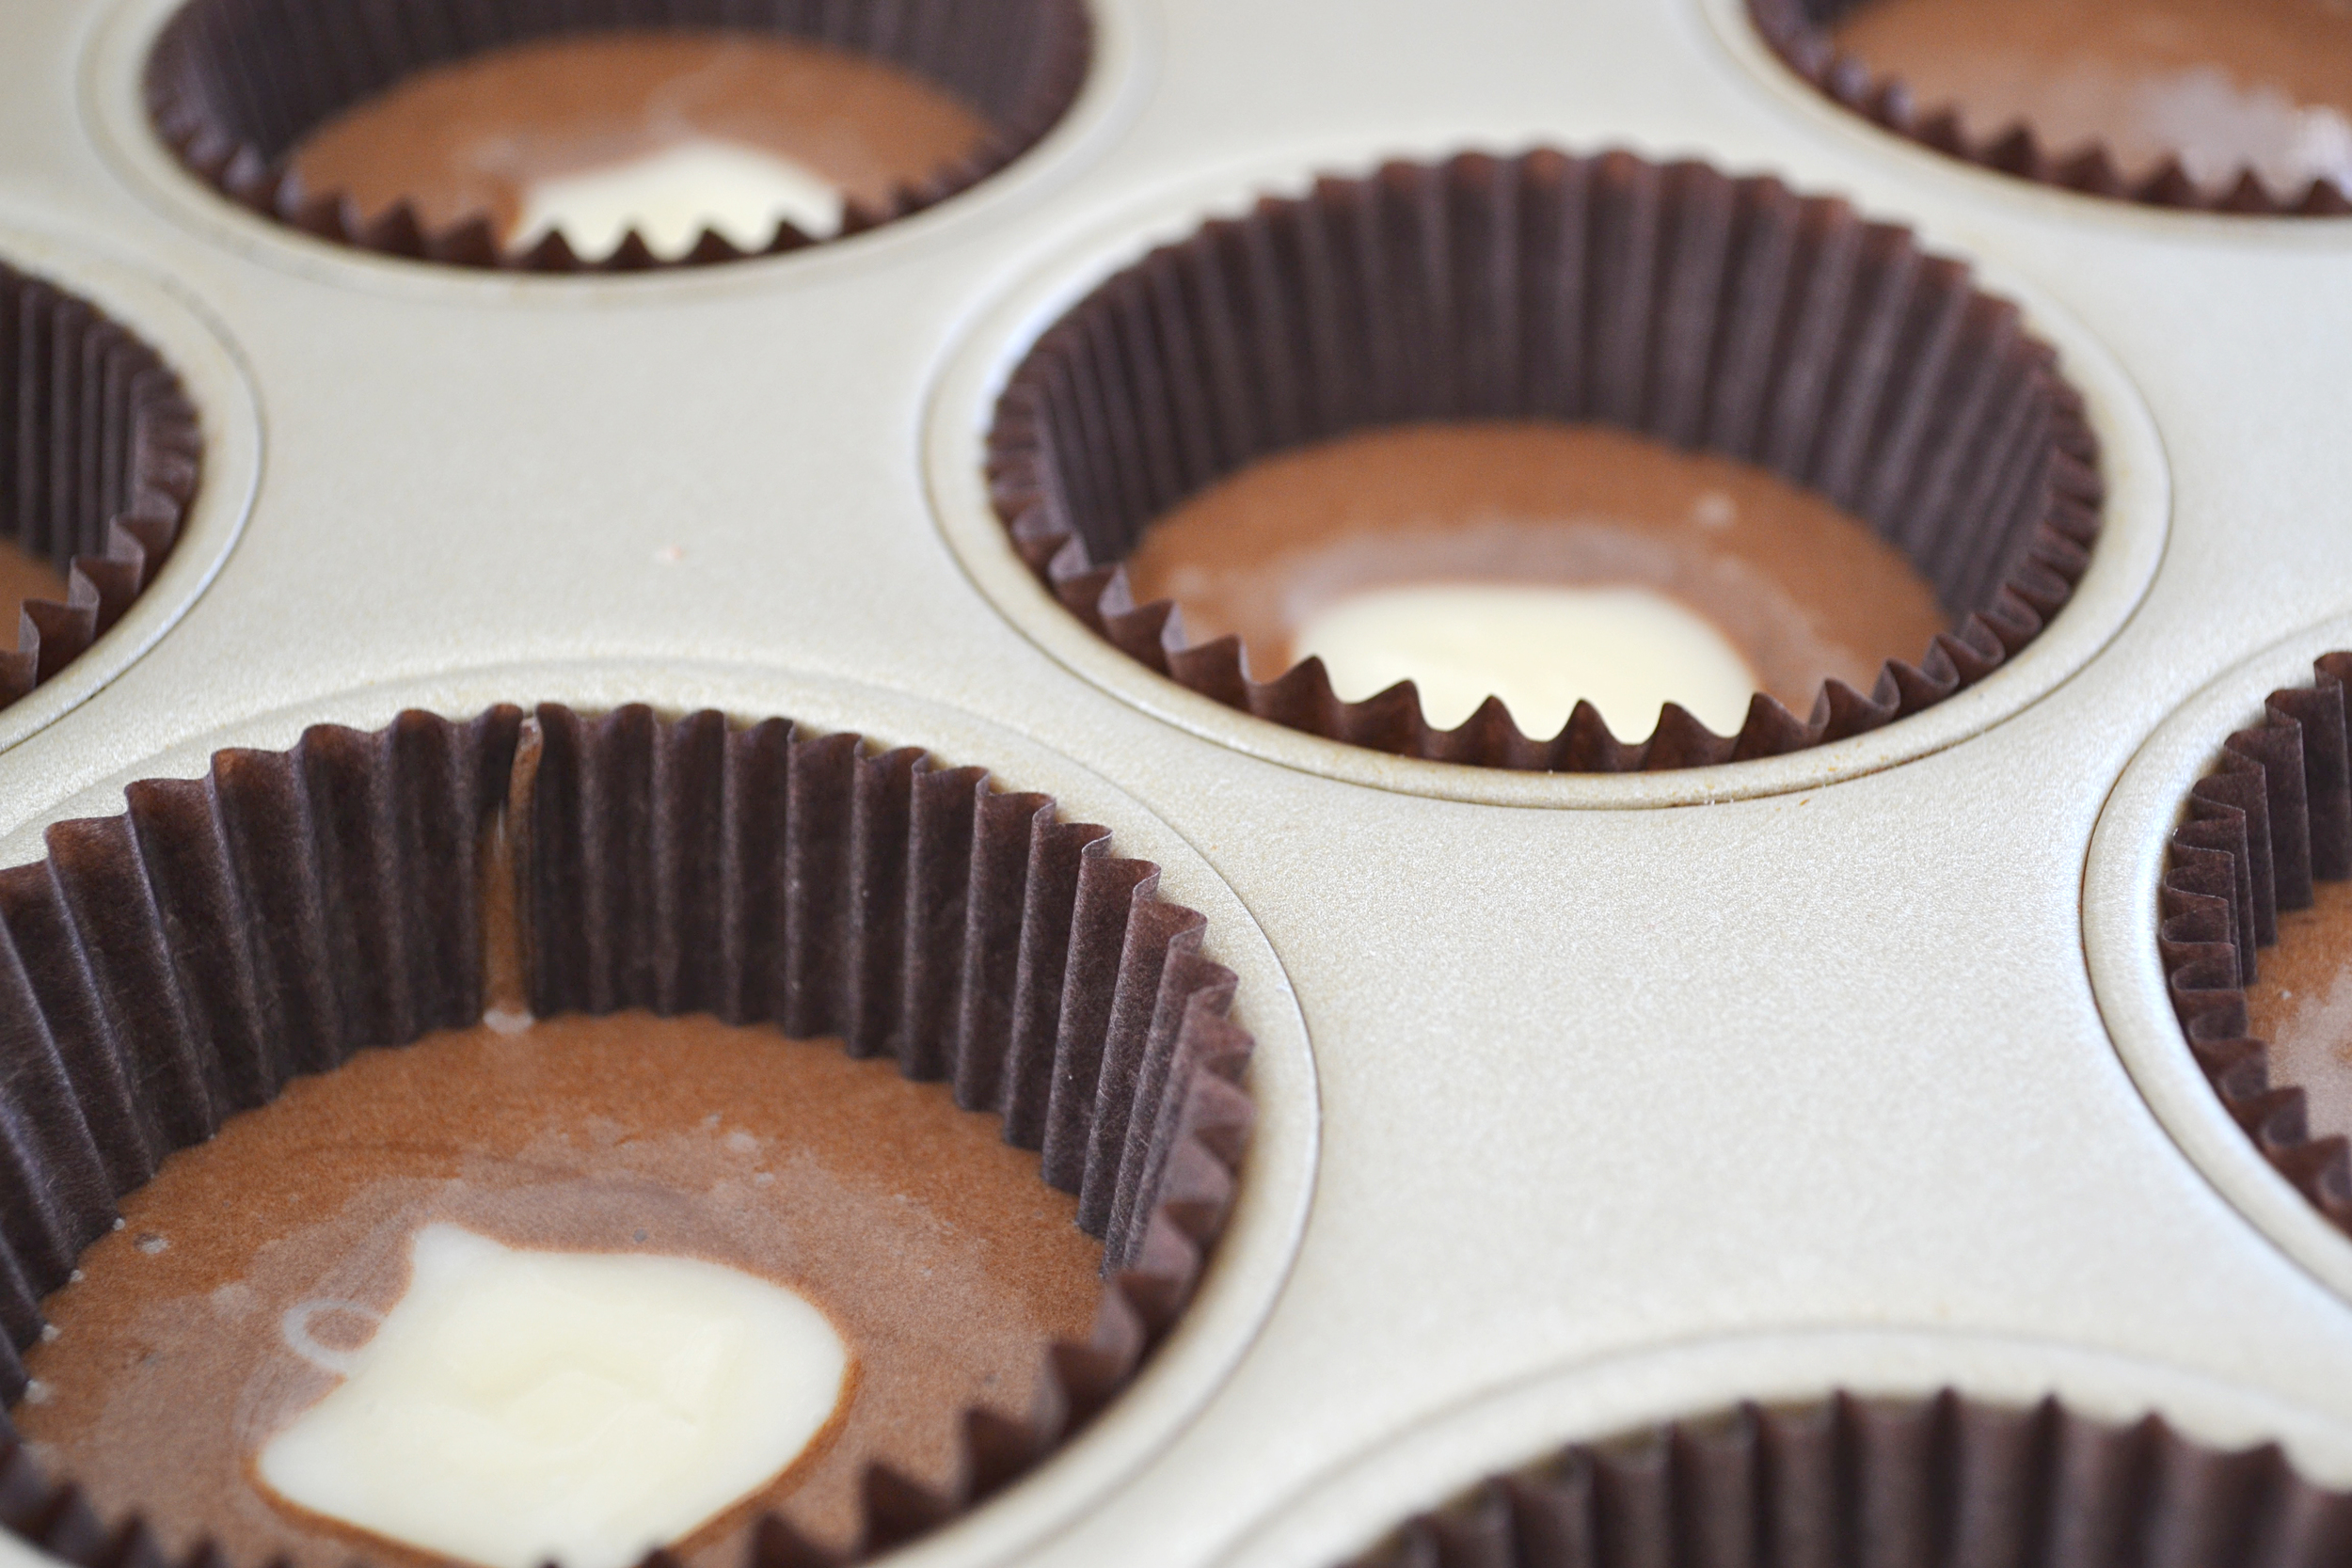 Oreo Dream Cupcakes -- Moist chocolate cupcakes with fluffy frosting made from European-style butter. | thegirlkyle.com